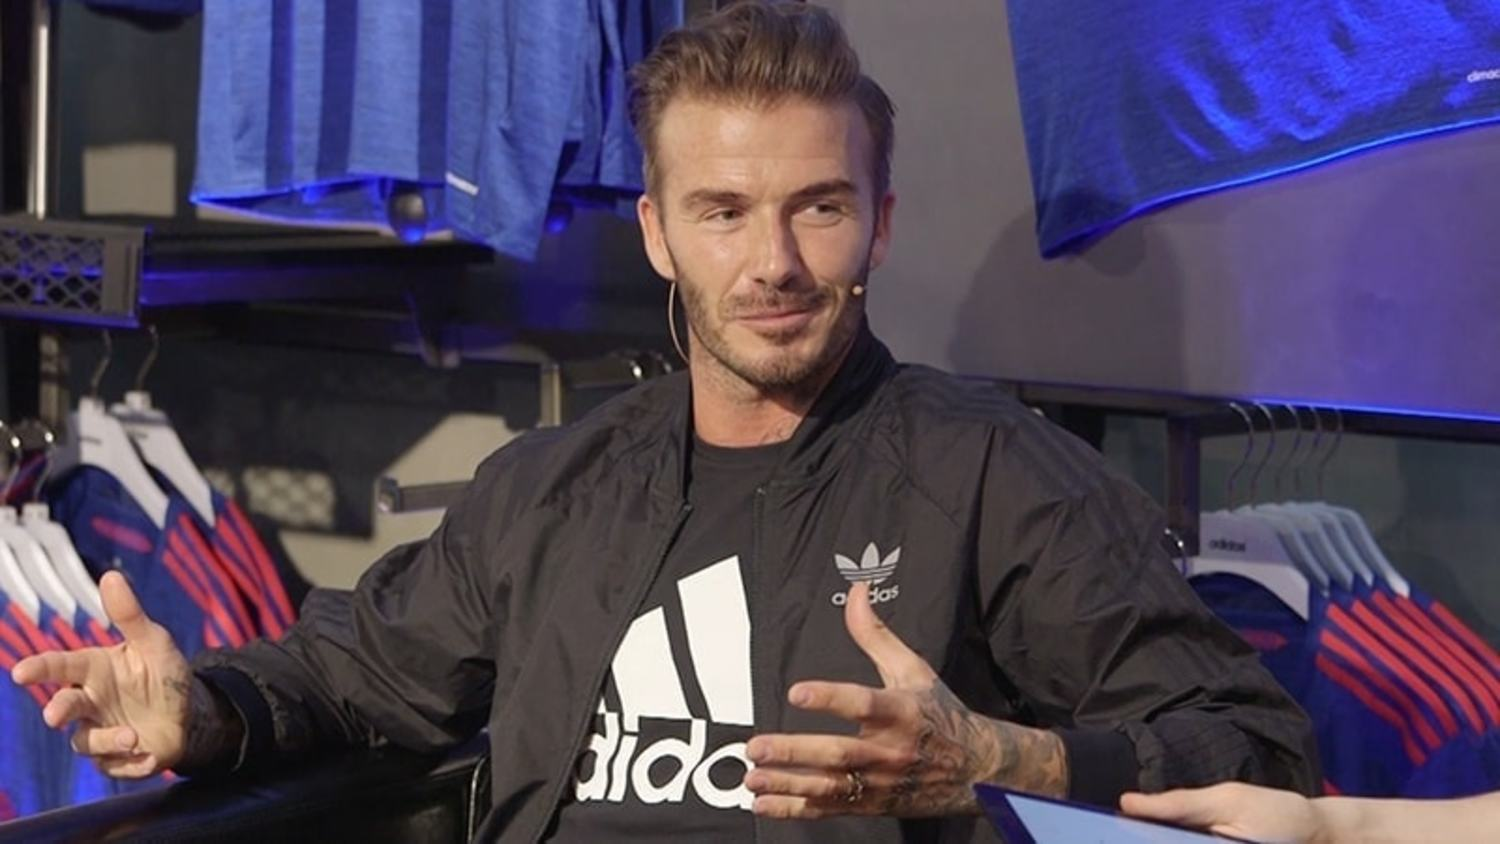 David Beckham Reveals His Ideal Signings for his Miami Club